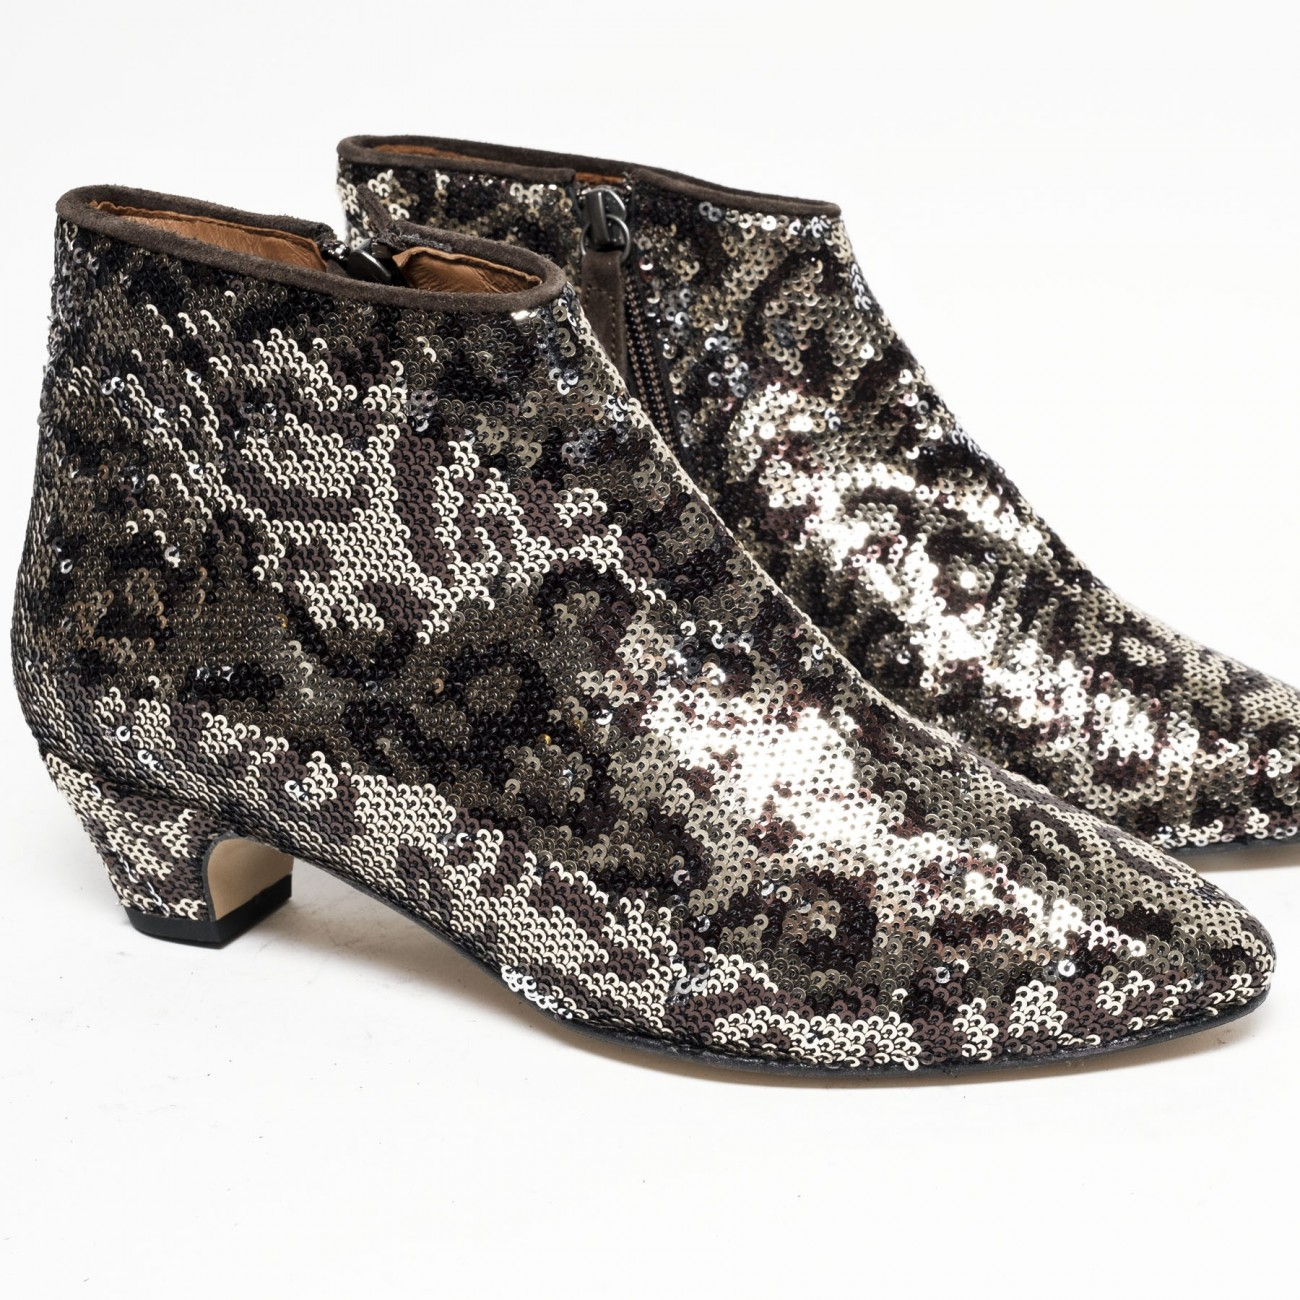 Kyra Sequins - Size 38